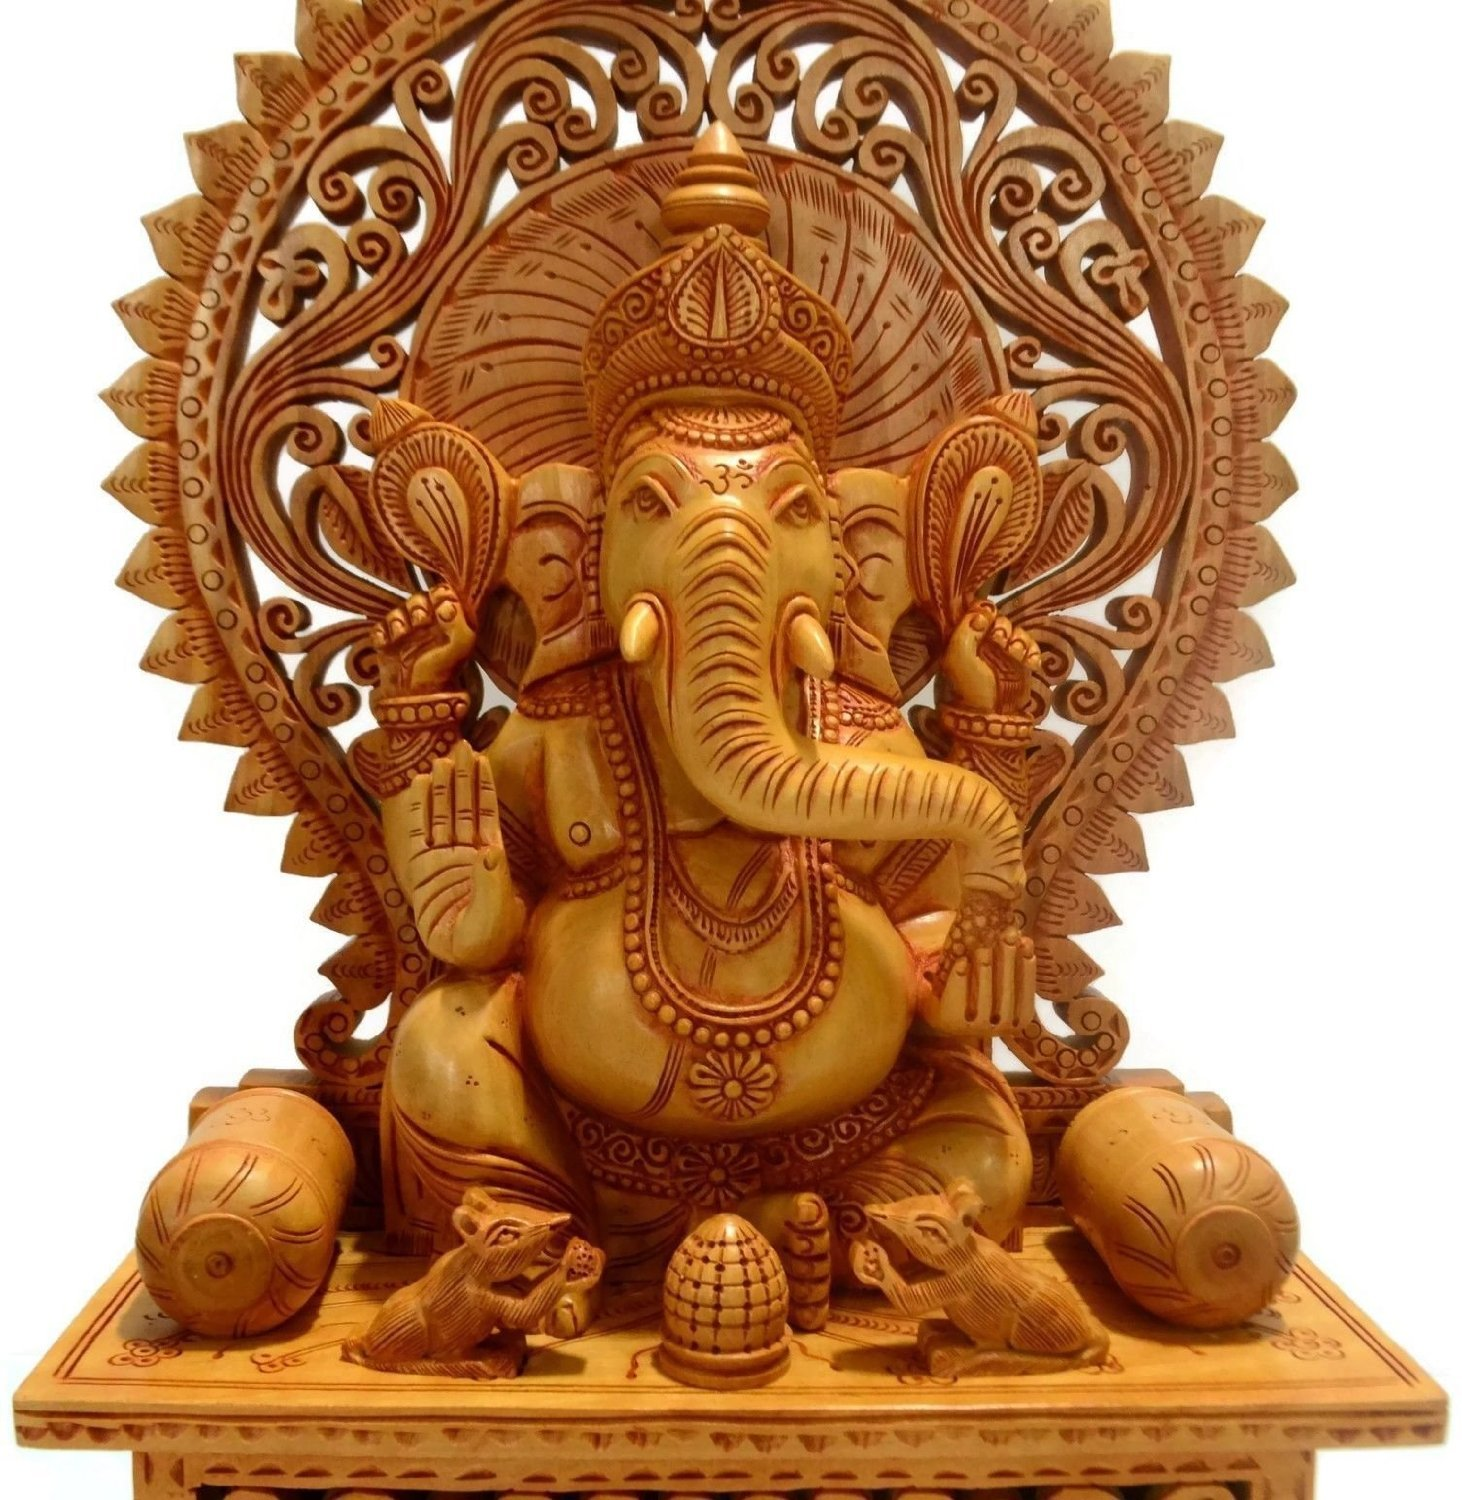 Buy Collectible India Ganesh Statue Showpiece Figurine Wooden